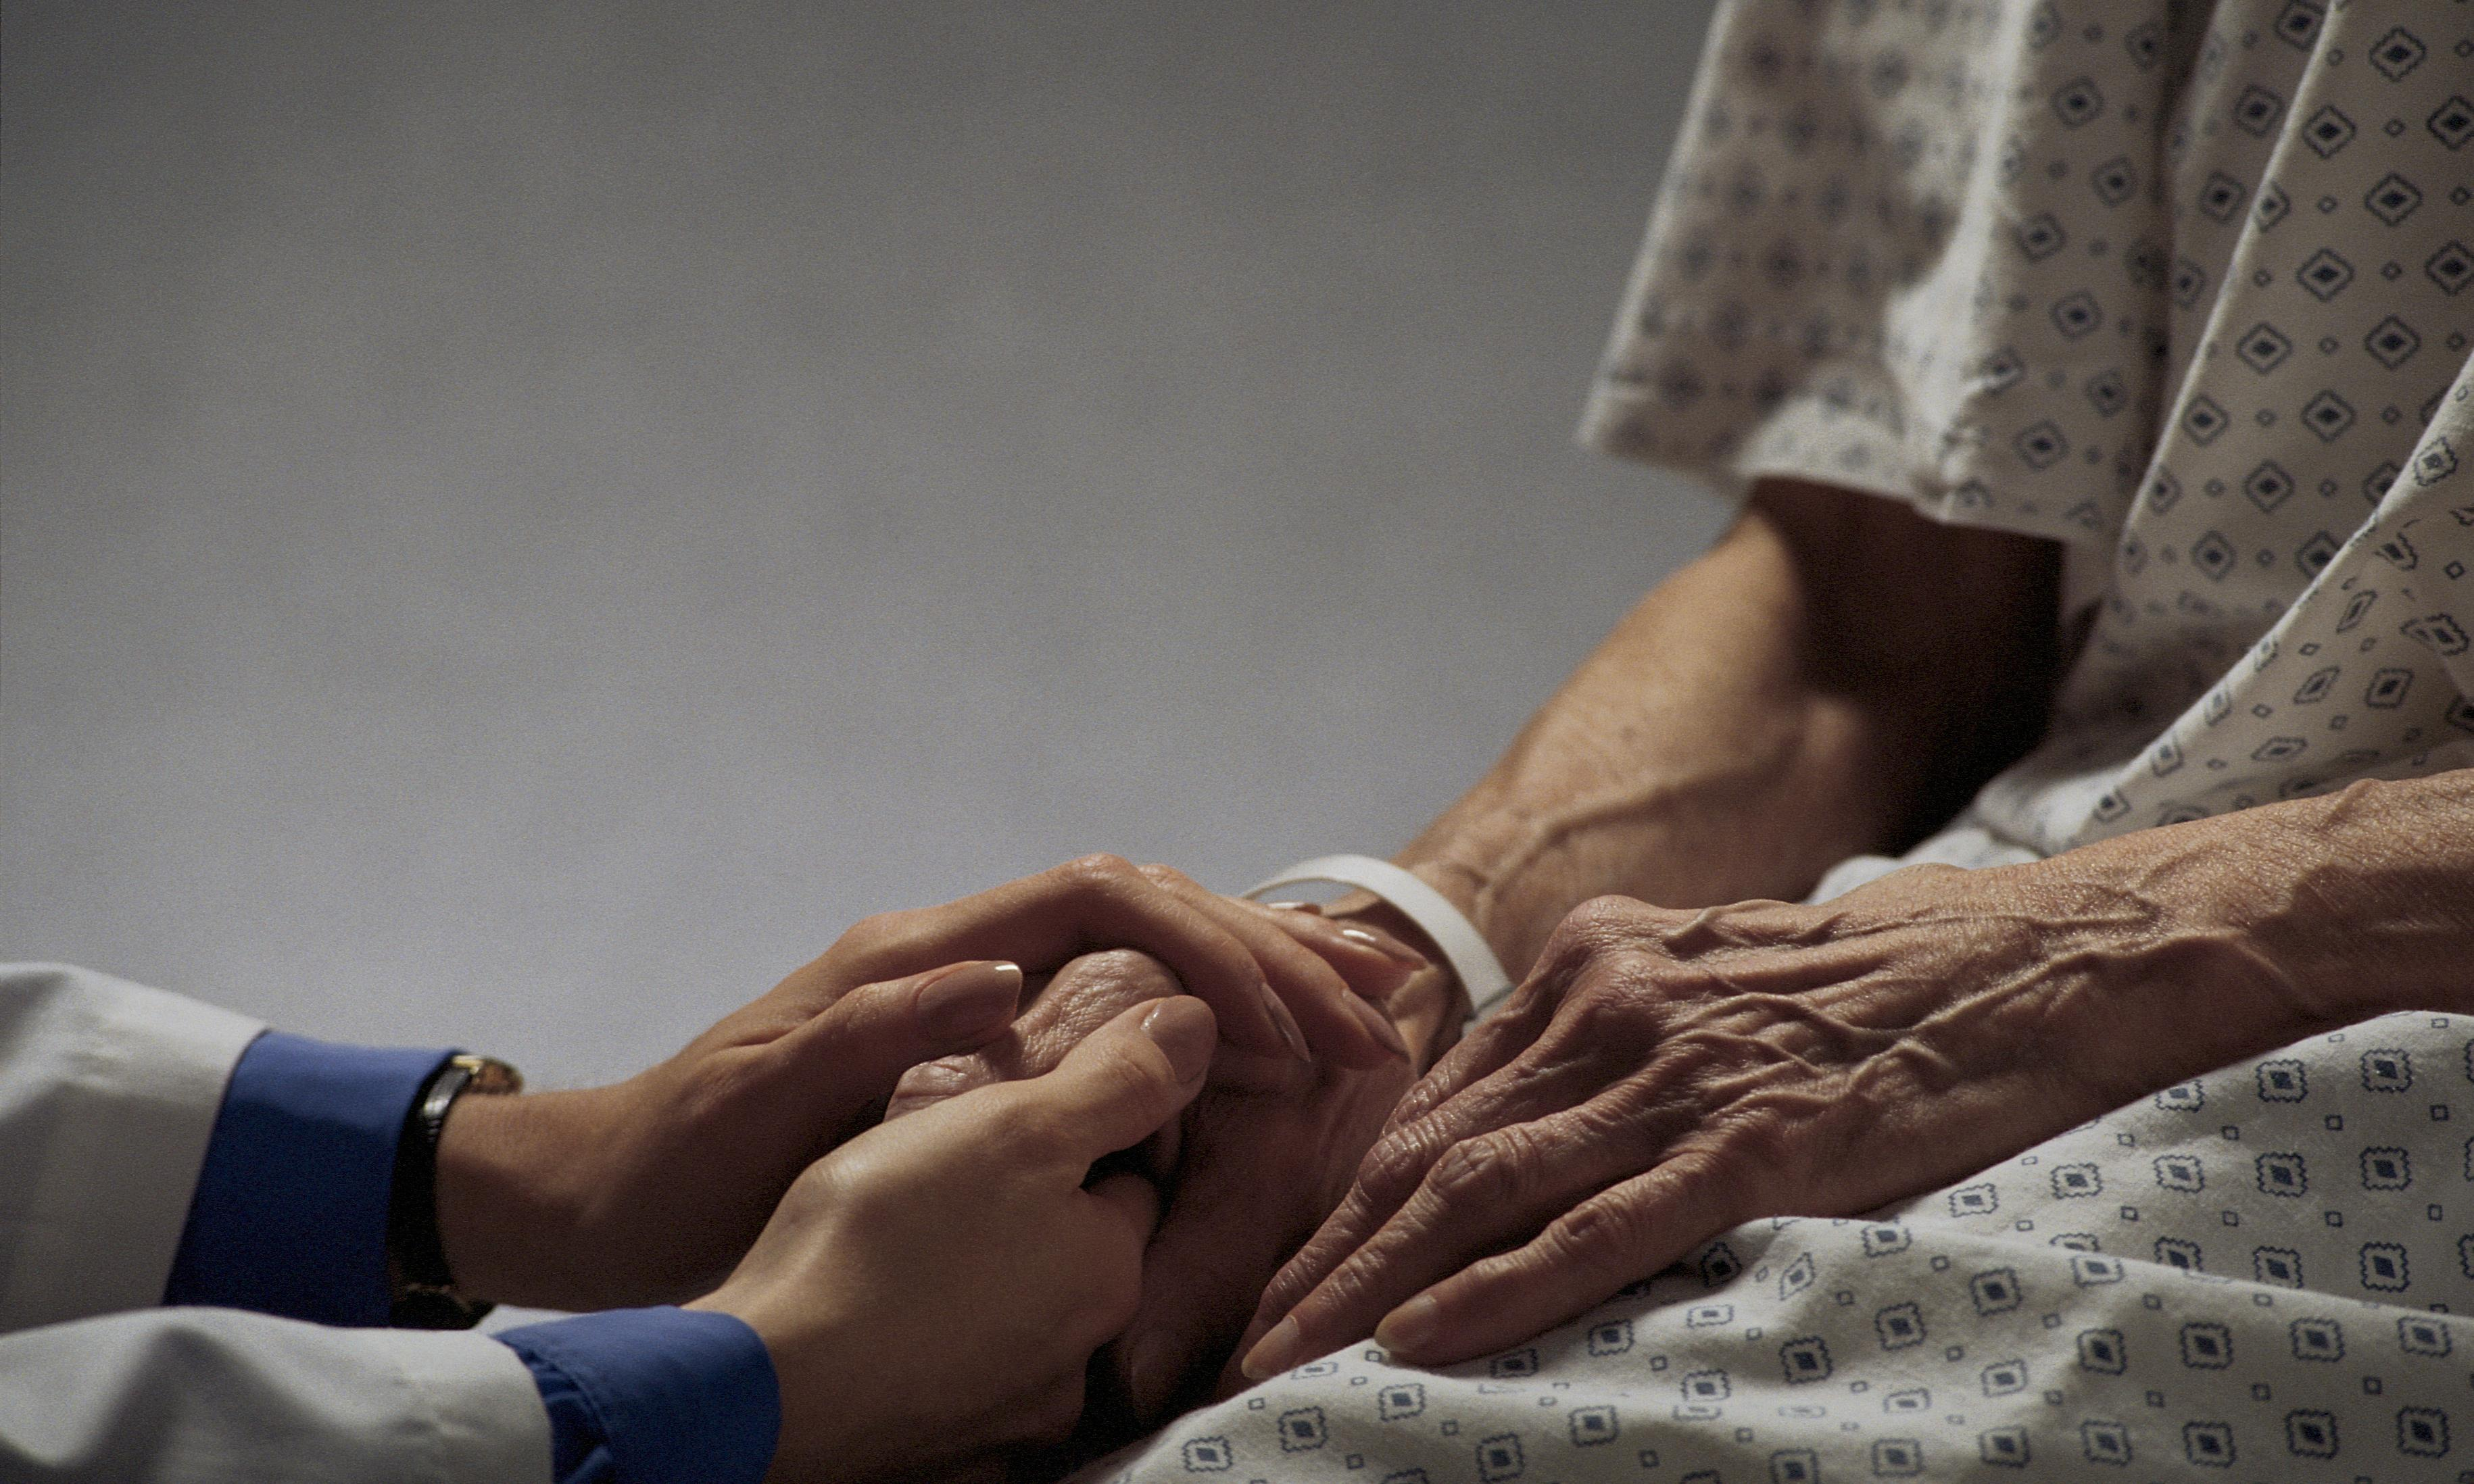 End-of-life care that should be ours by right